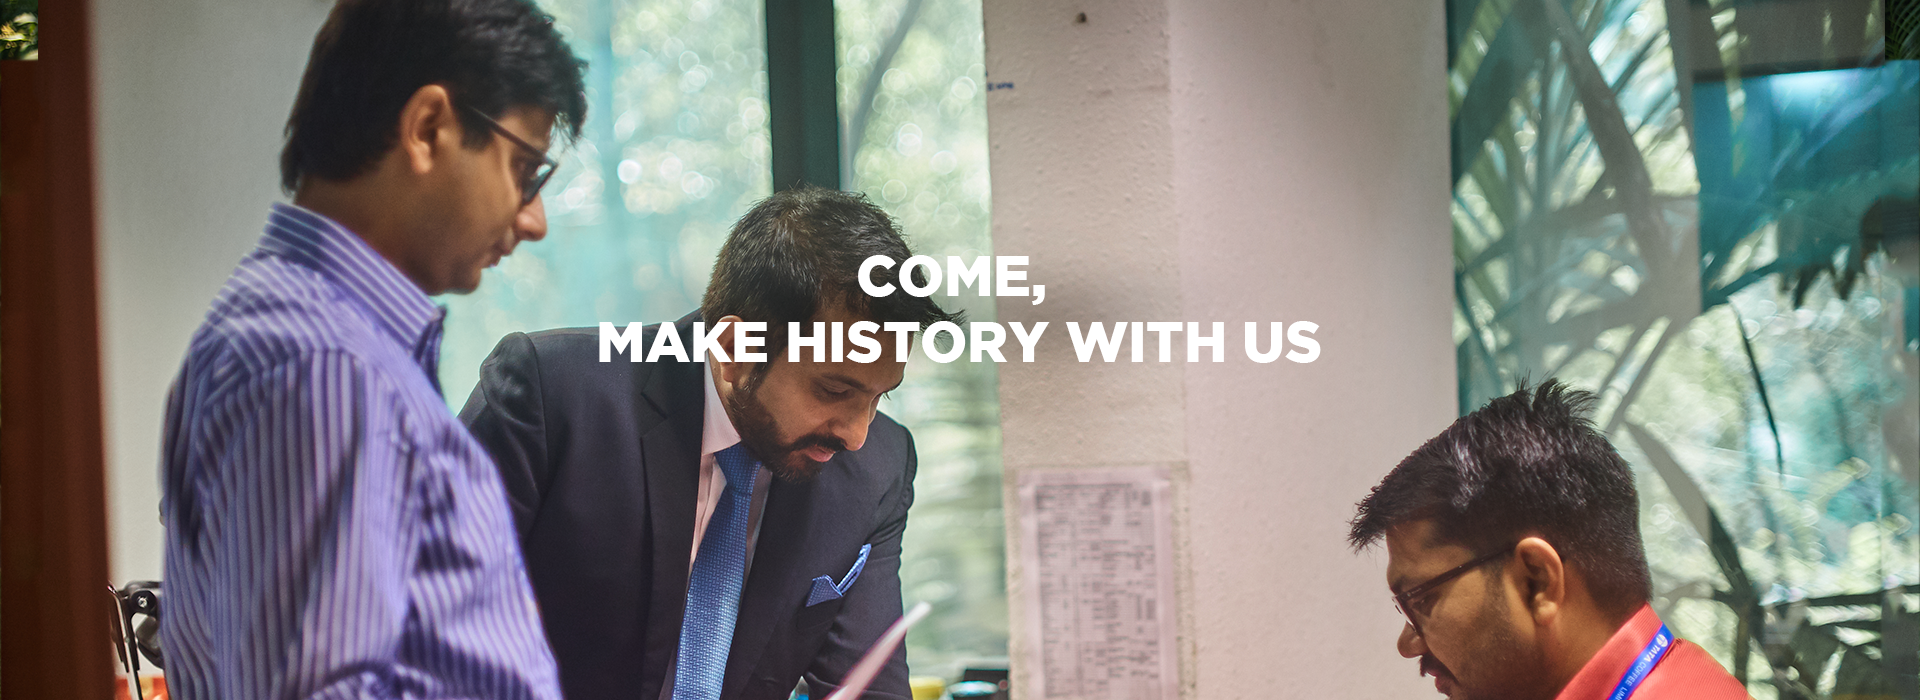 Come and make history with us  - Desktop  - Tata Coffee